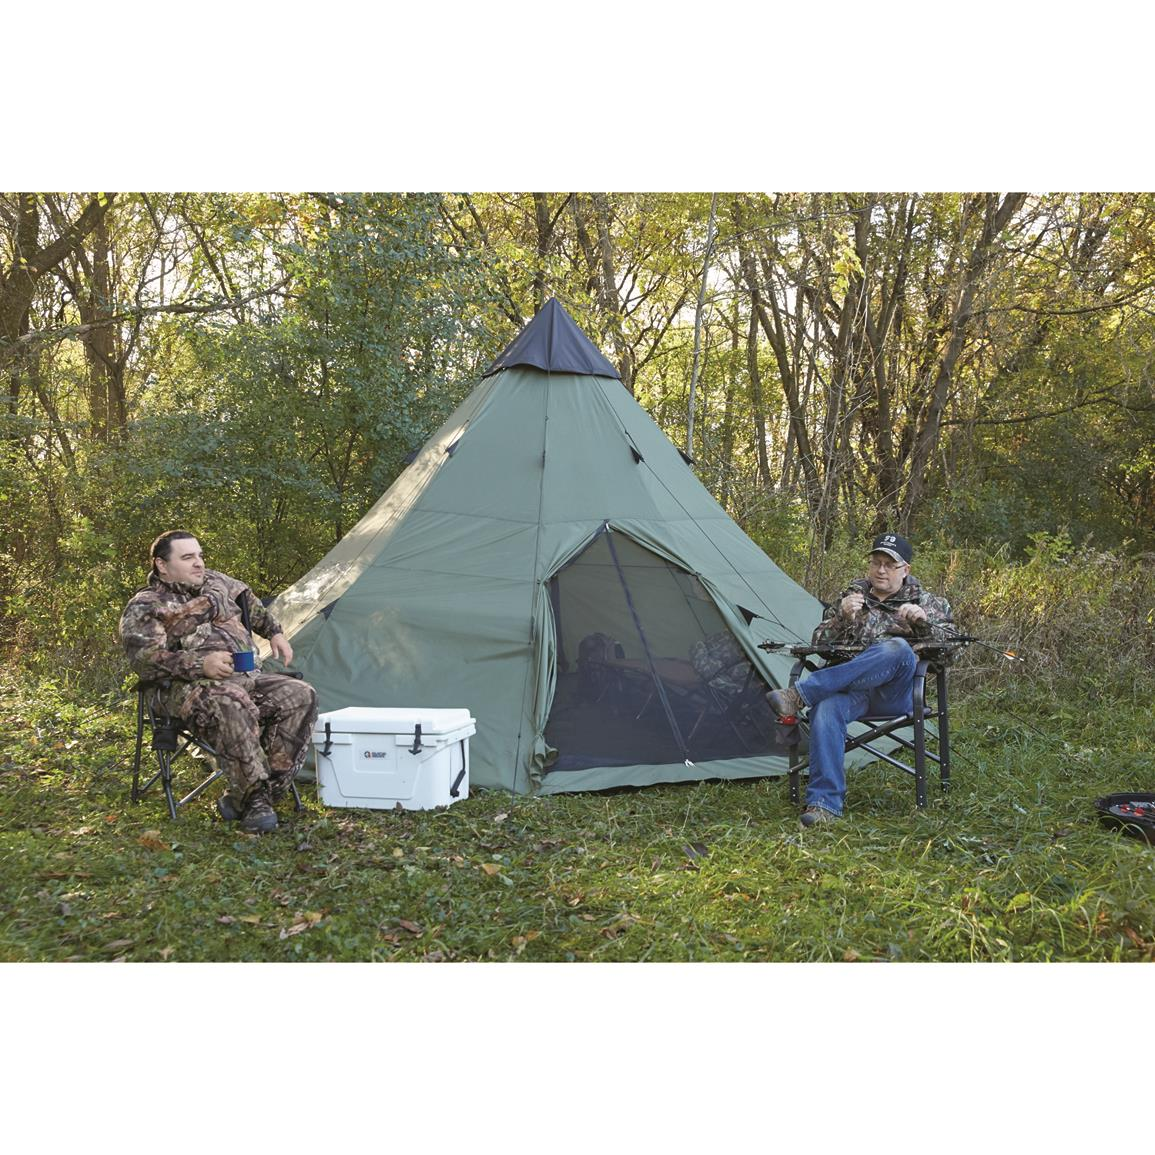 Center-zip door with no-see-um-mesh  sc 1 st  Sportsmanu0027s Guide & Guide Gear Teepee Tent 18u0027 x 18u0027 - 175419 Outfitter u0026 Canvas ...